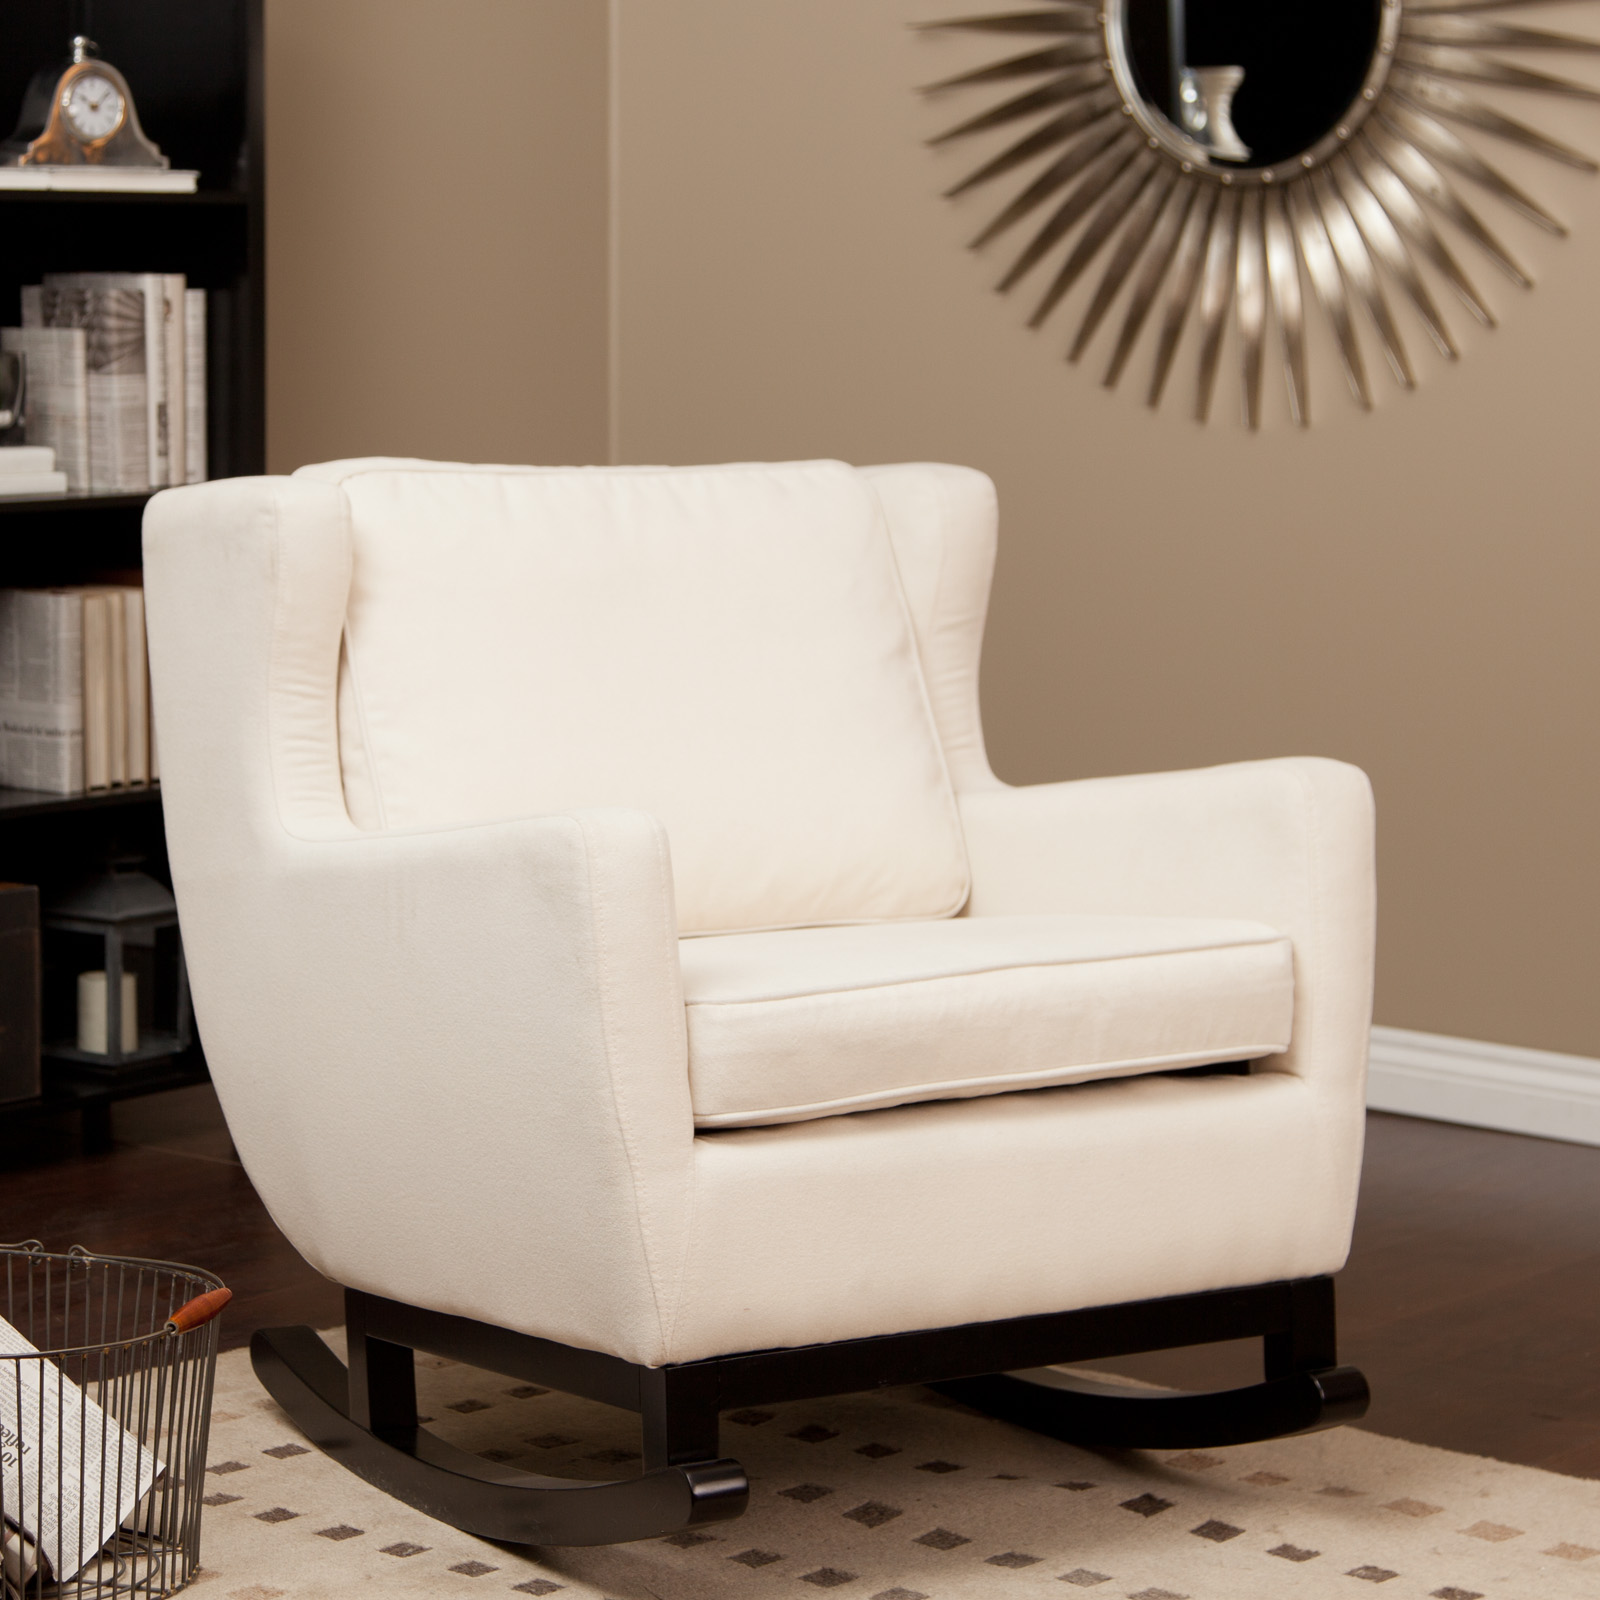 Belham Living Upholstered Rocking Chair  Cream at Hayneedle